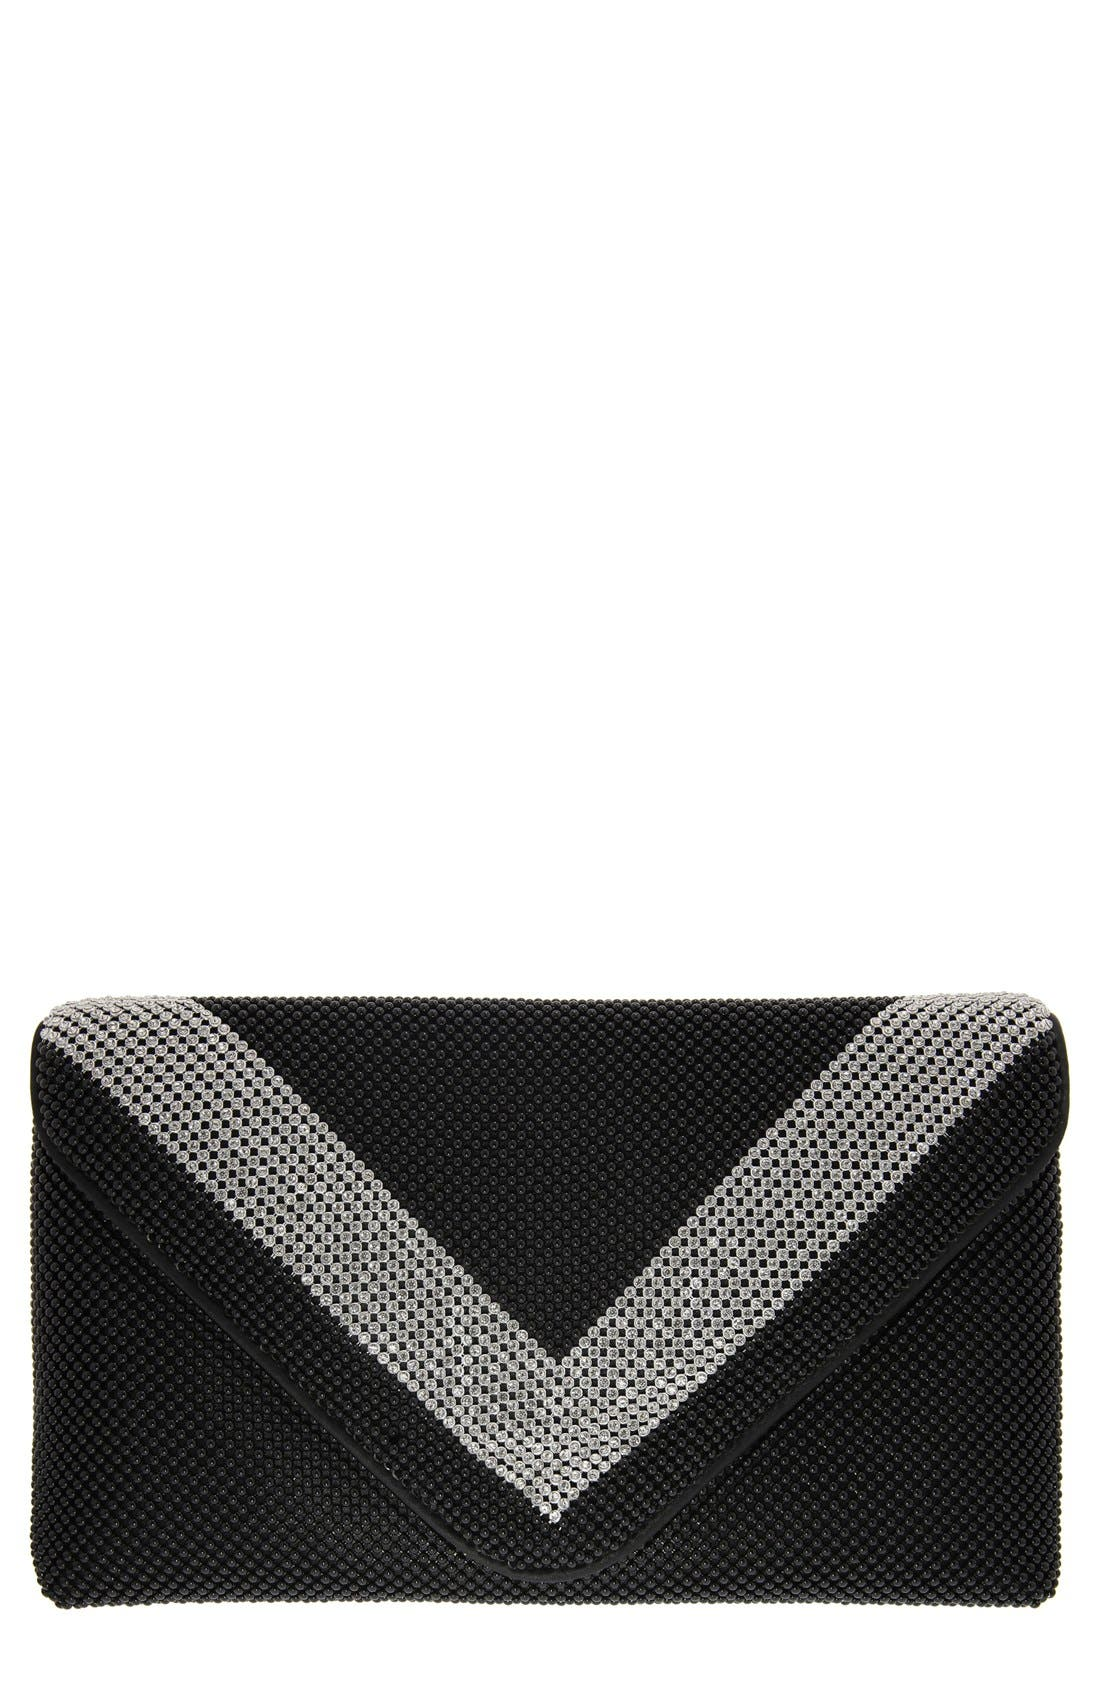 NINA Ball Kiralee Mesh Clutch